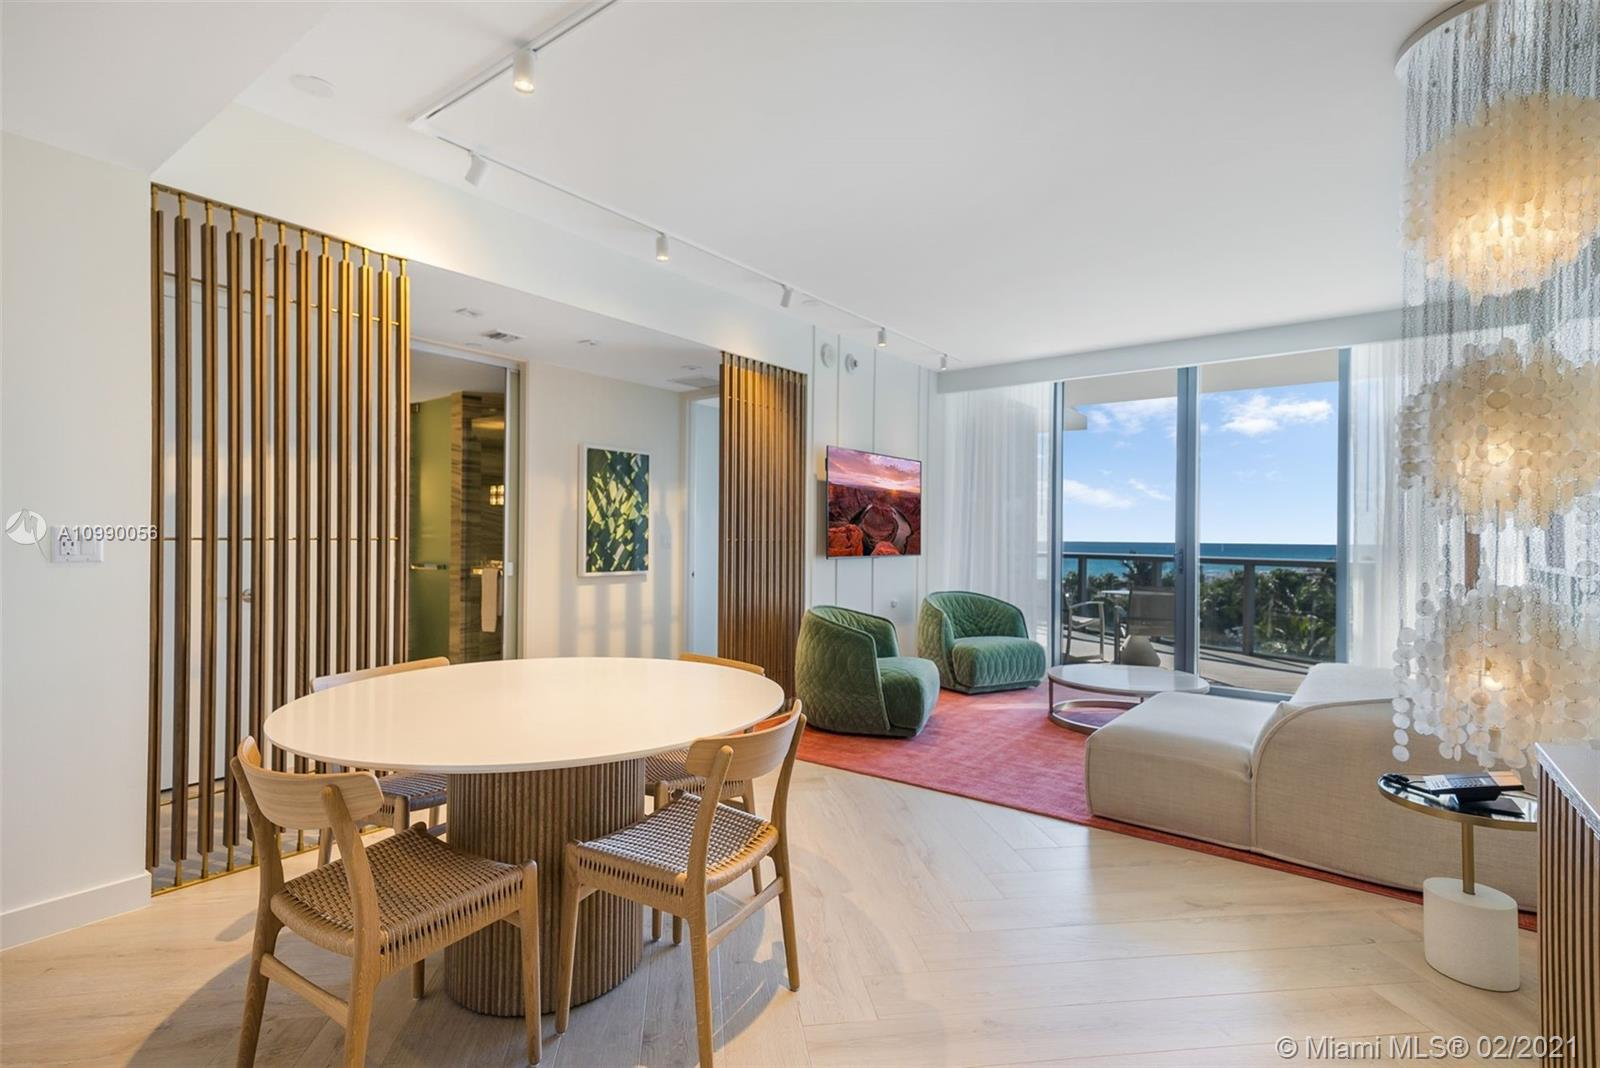 2 of the finest condos at W South Beach. Just renovated and  furnished with new W look. One of a kind combination Oasis Suite and Wonderful Studio, w/custom lockout door.  Best 2 bed + den layout and location in the building. Offers great flexibility; use together, separate, personal use, enter rental program, or rent yourself or a combination to suit your needs. This unique opportunity was handpicked & assembled by one of the 1st pre-construction buyers. 2415 sq ft of south facing living space comprised of 1715 sqft indoor plus 500 sqft extended terrace, very private with no neighbors on either side. Provides an uninterrupted indoor/outdoor flow, all day sun & stunning ocean views.  Owner was able to negotiate a dedicated parking spot on the same floor (6th), which only a few units have.